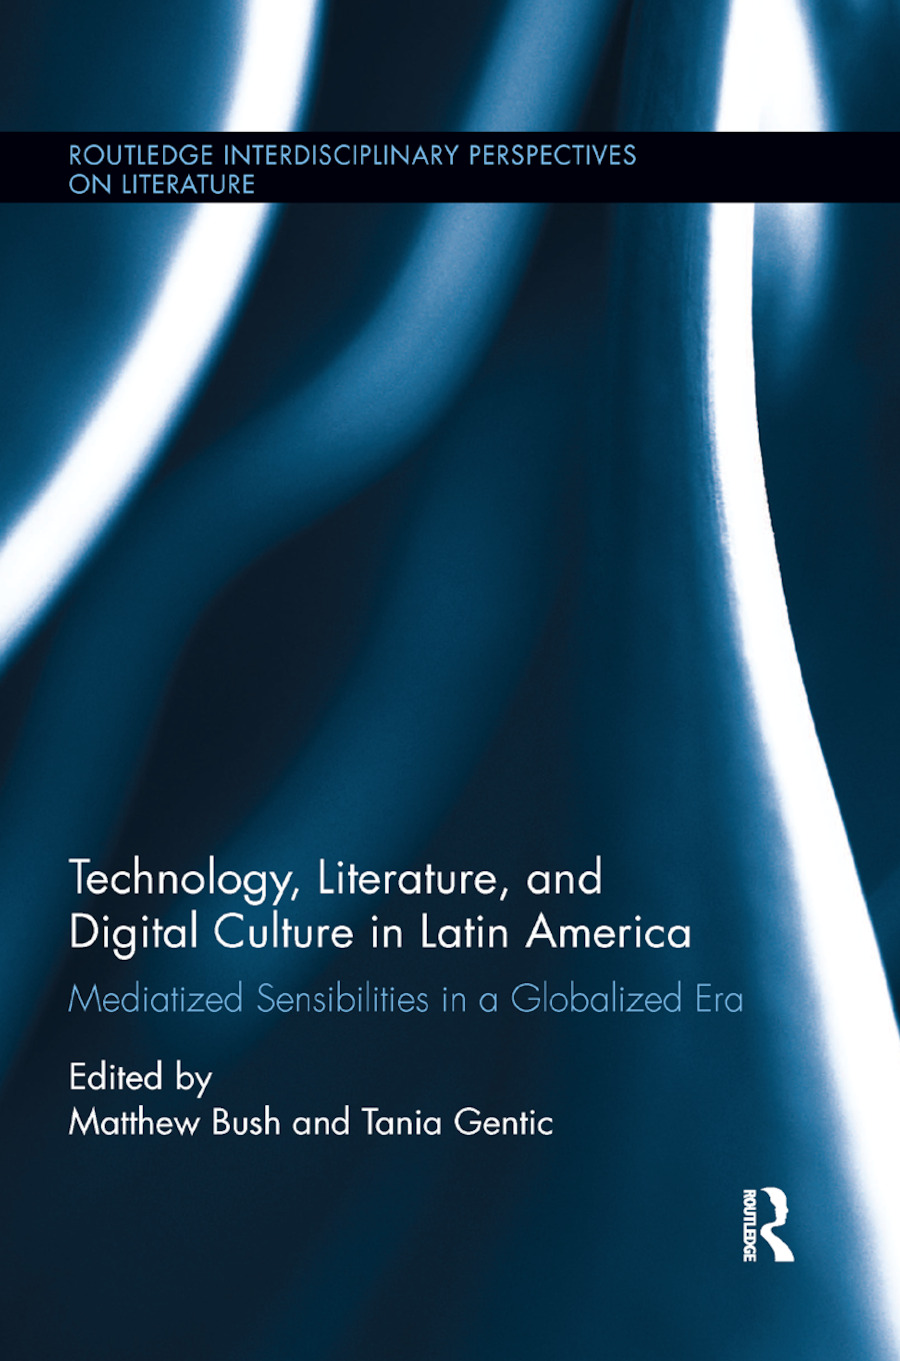 Technology, Literature, and Digital Culture in Latin America: Mediatized Sensibilities in a Globalized Era book cover